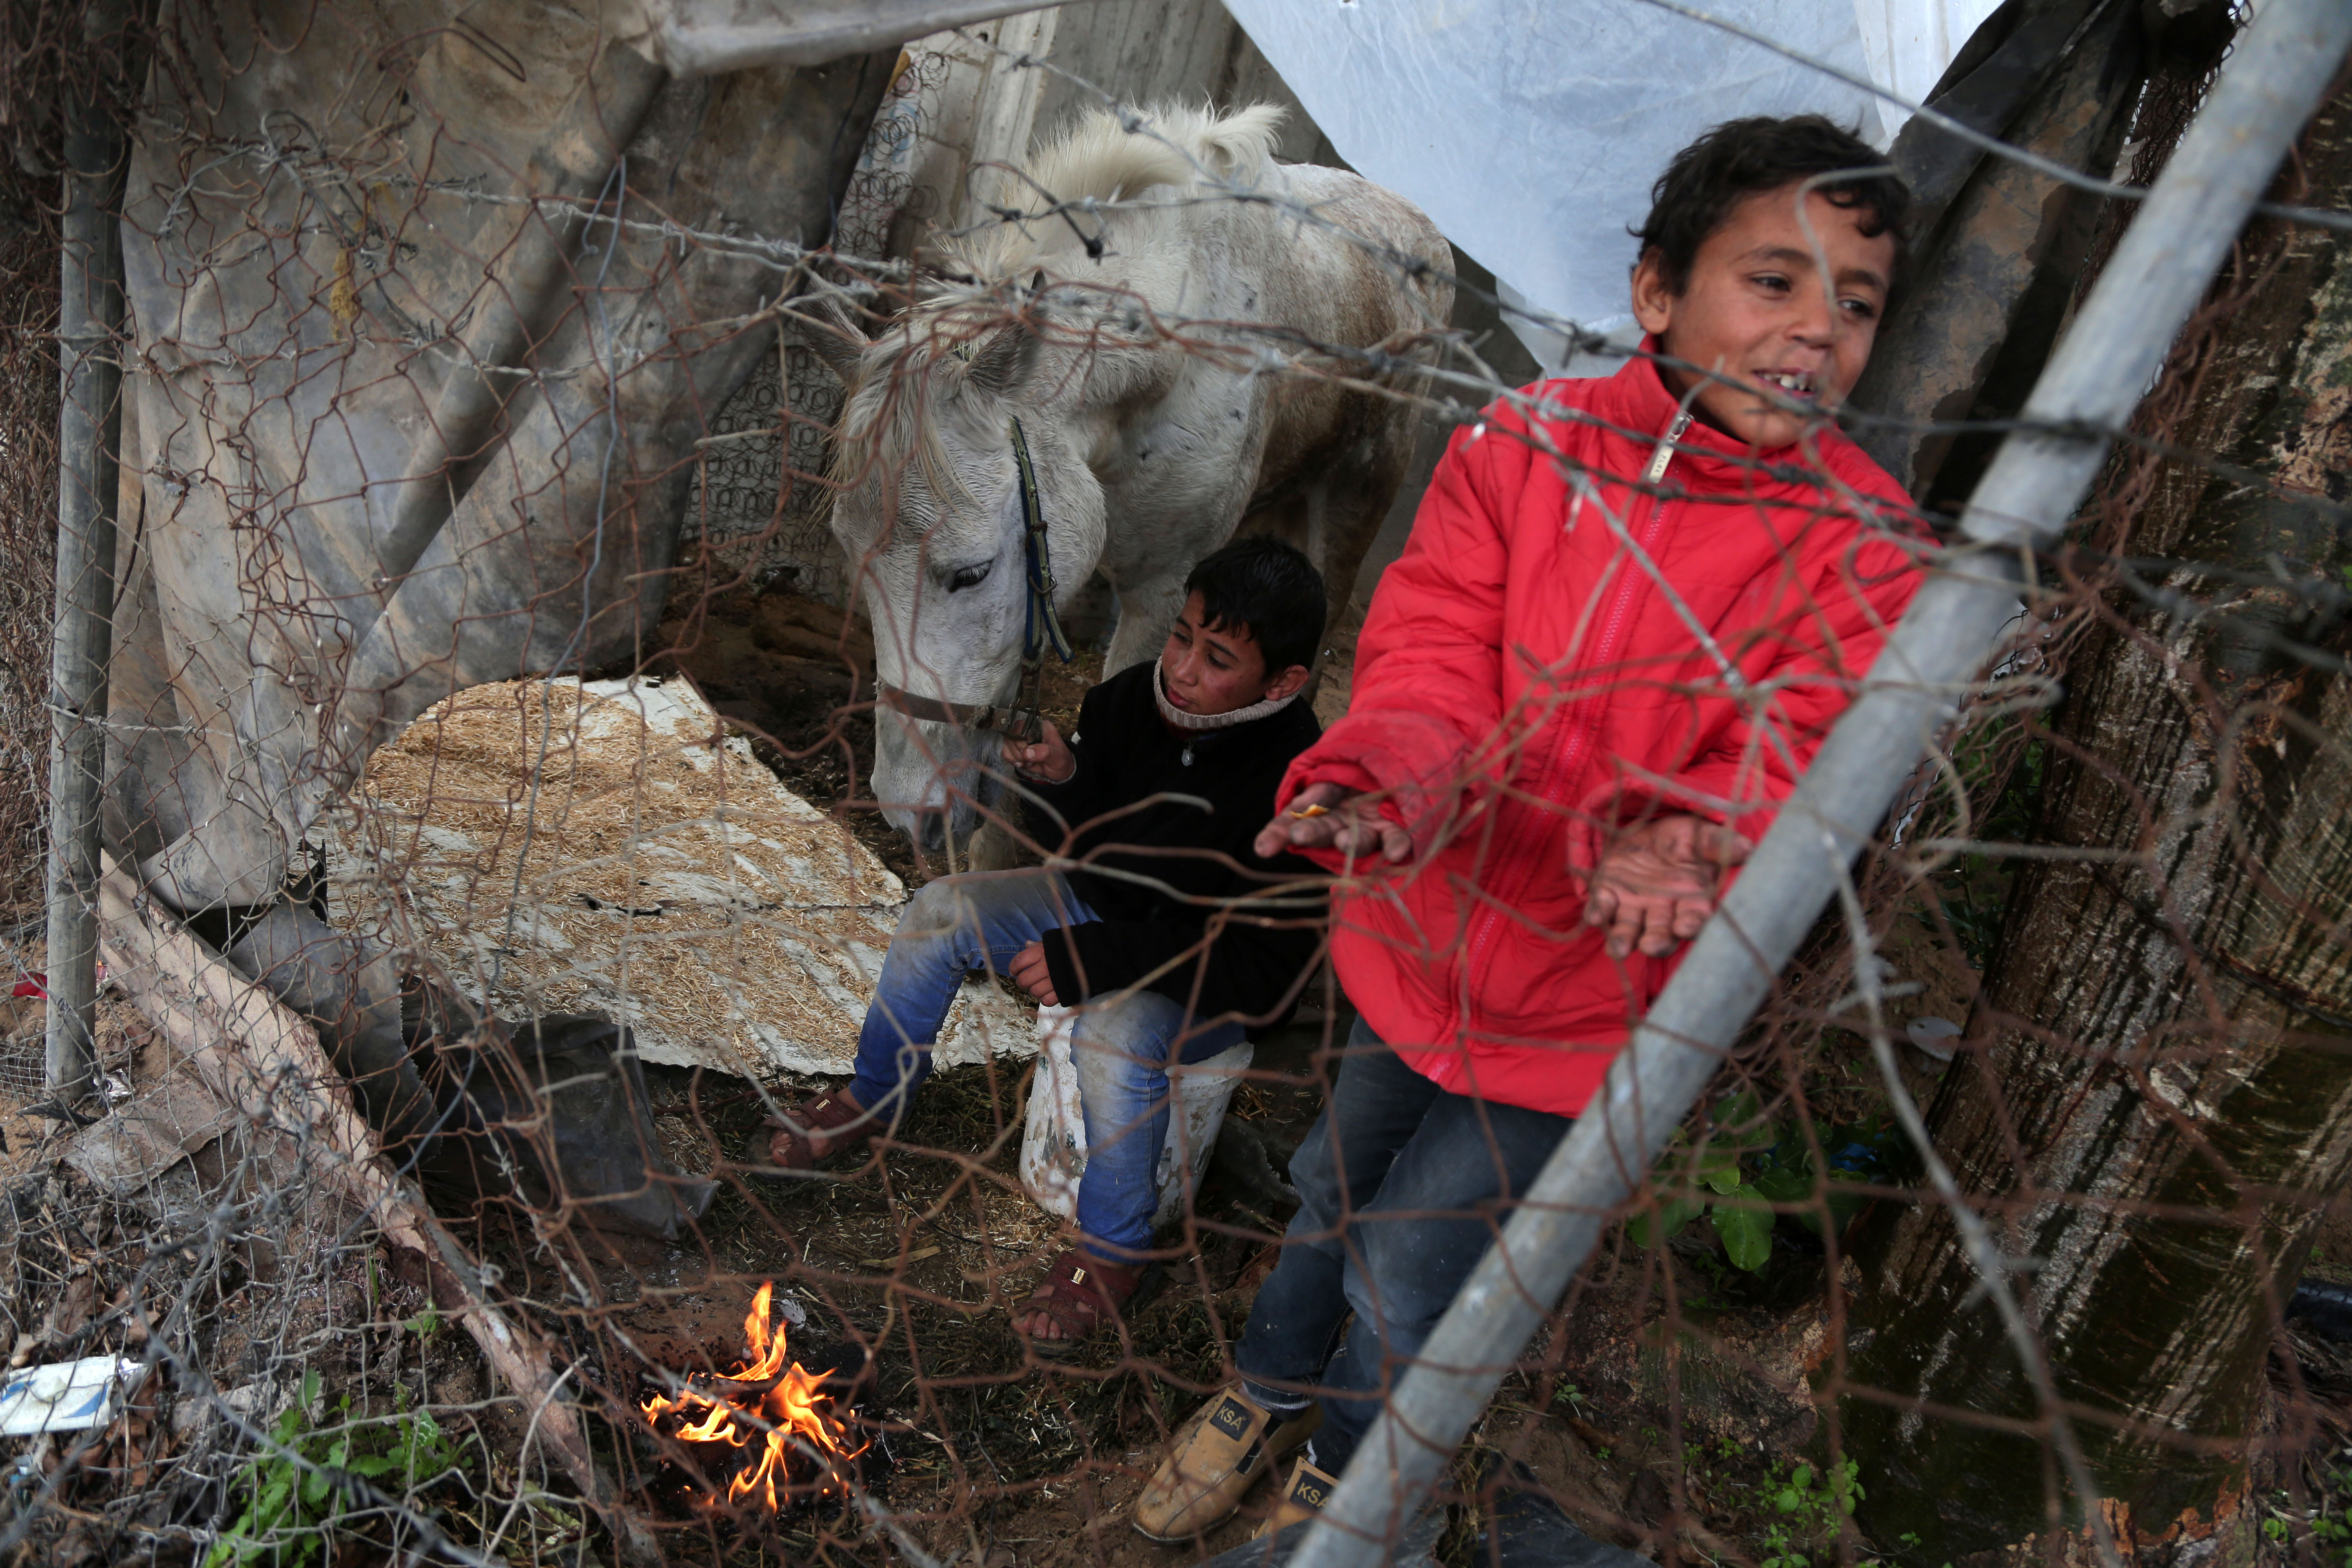 Palestinian children warm up in front of a fire in a hovel